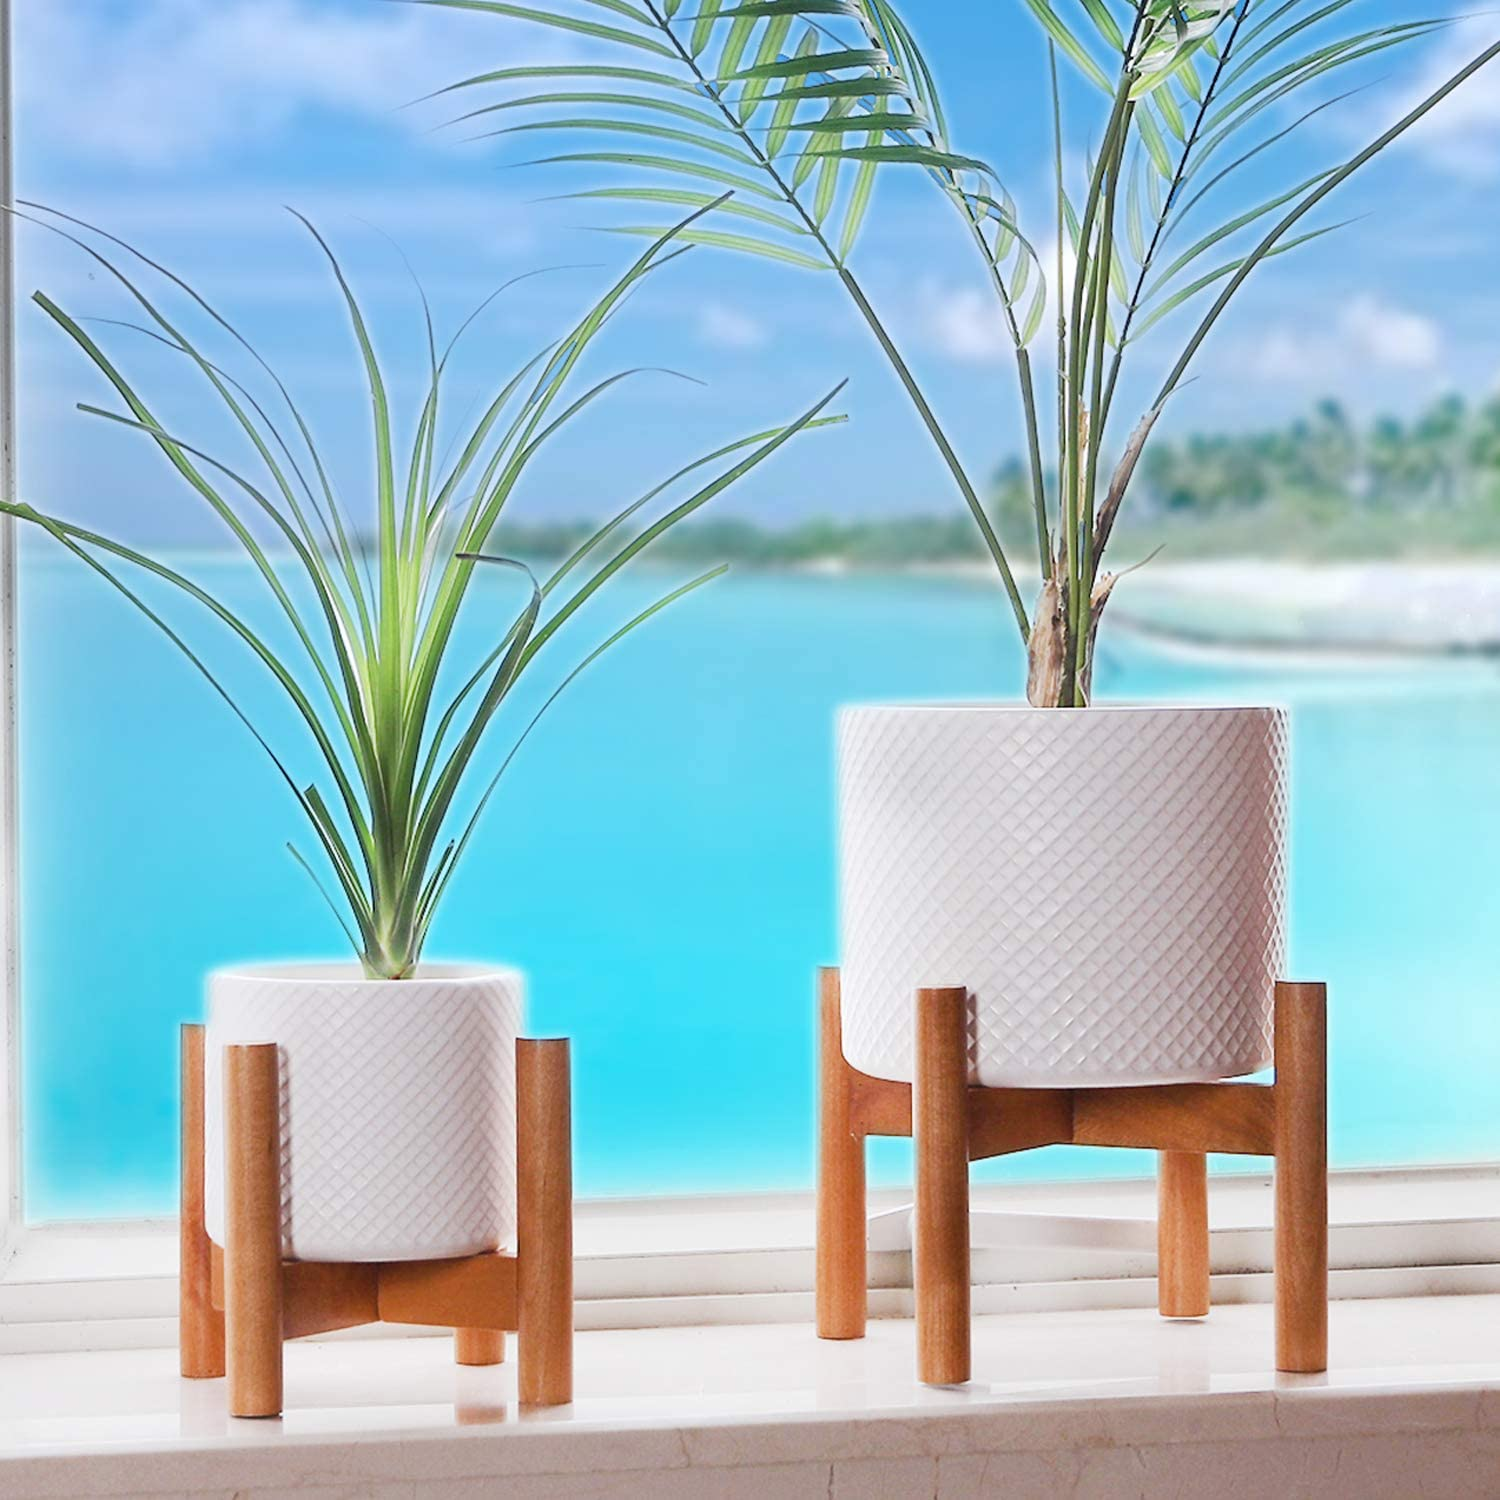 Indoor Mid Century Ceramic Plant Pots with Wood Planter Stands, 7 & 4.7 inch Dia inch White Large & Small Decorative Flower Pots for Home Decor Tabletop Outdoor Garden (Set of 2)